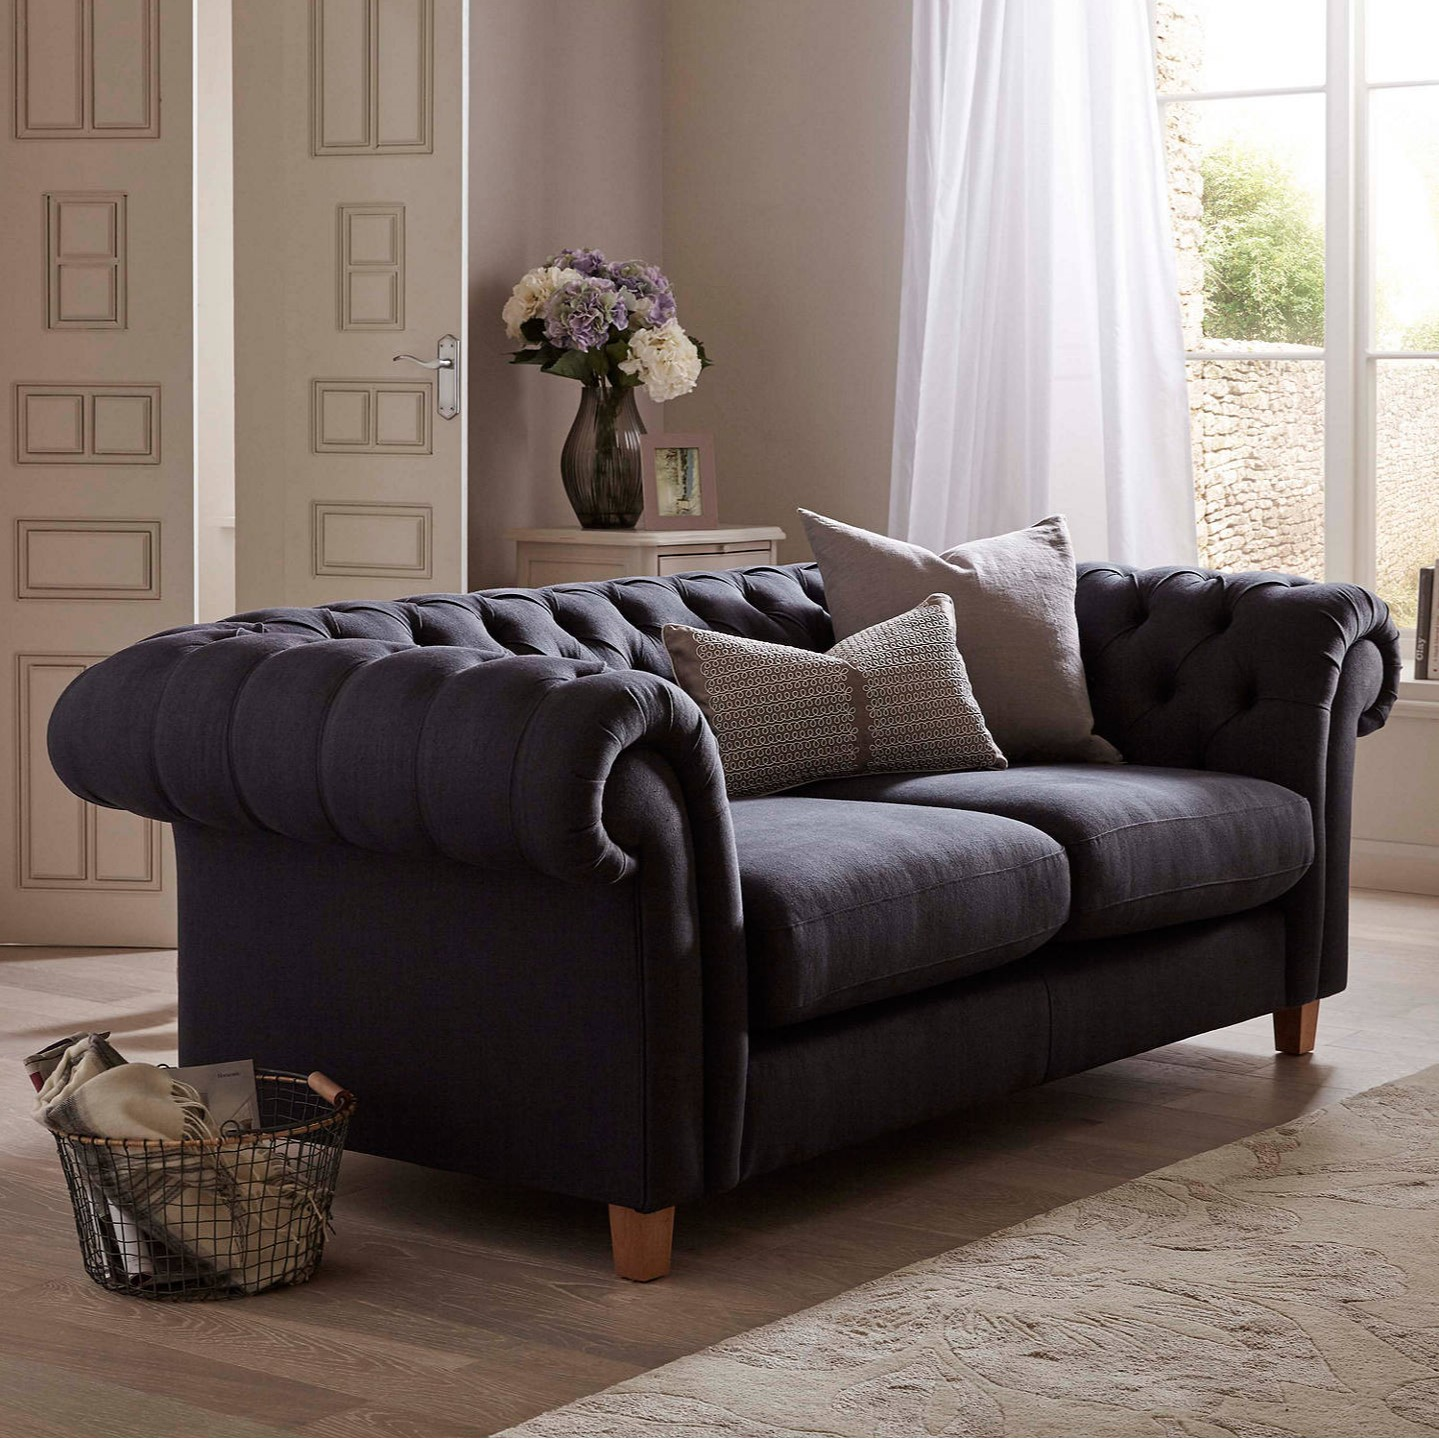 5 Things to Consider When Buying A Sofa